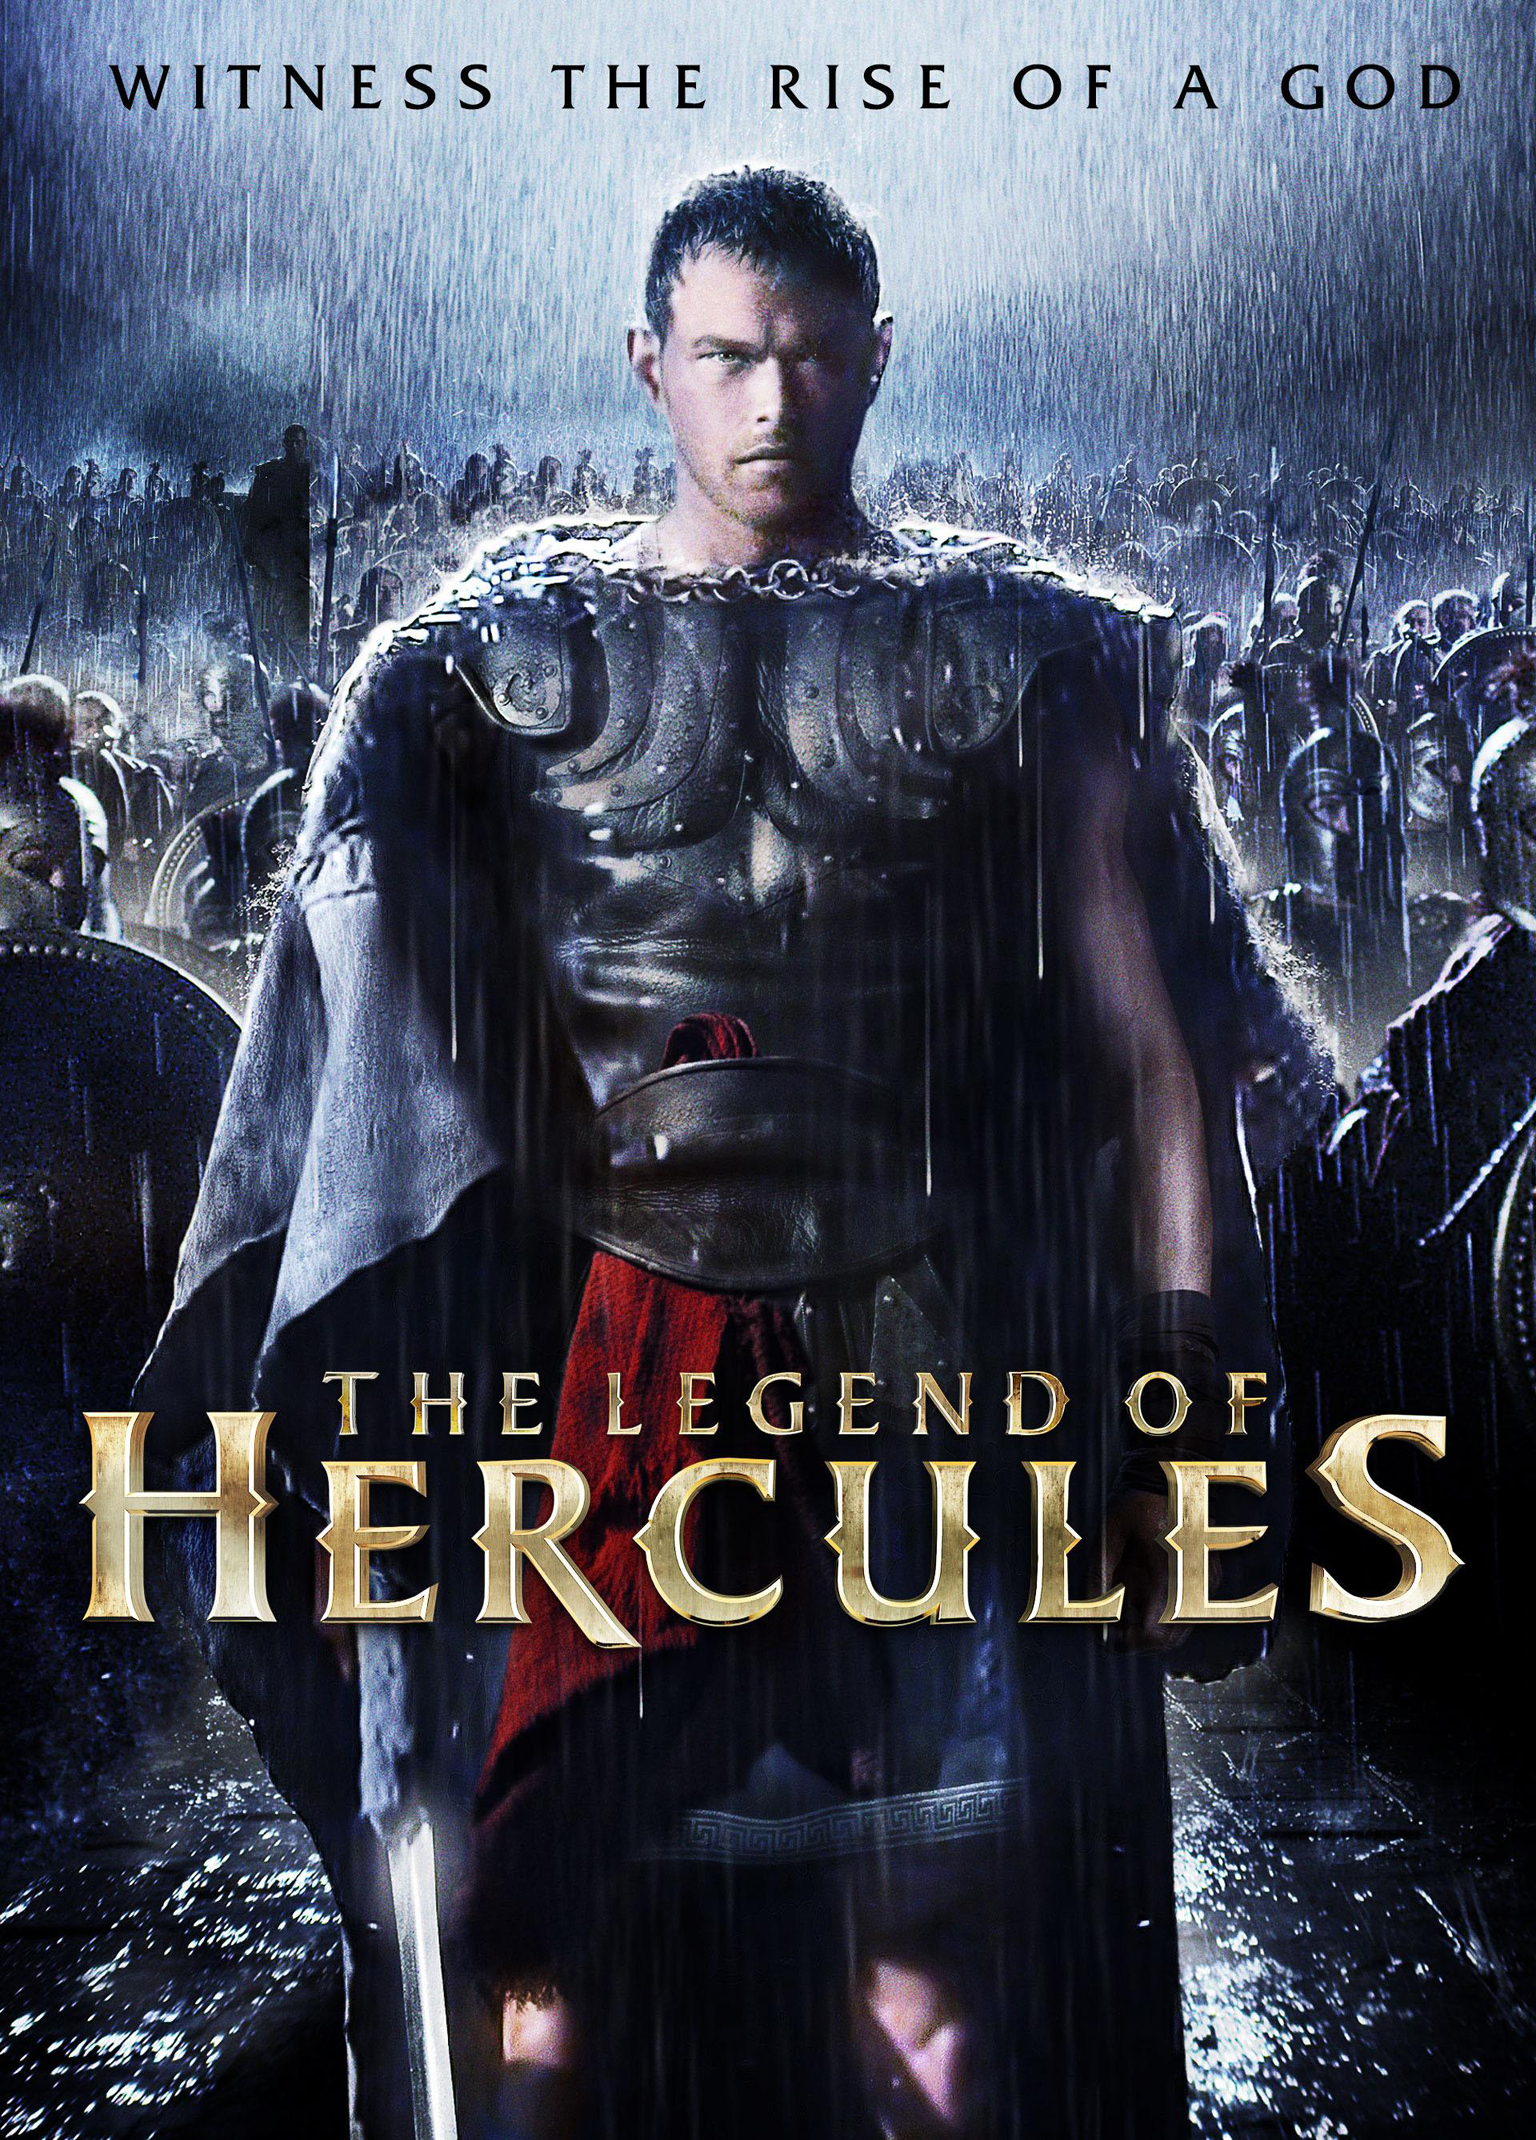 The legend of Hercules / Summit Entertainment and Millennium Films present &#59; a Nu Boyana production &#59; a Renny Harlin film &#59; produced by Da